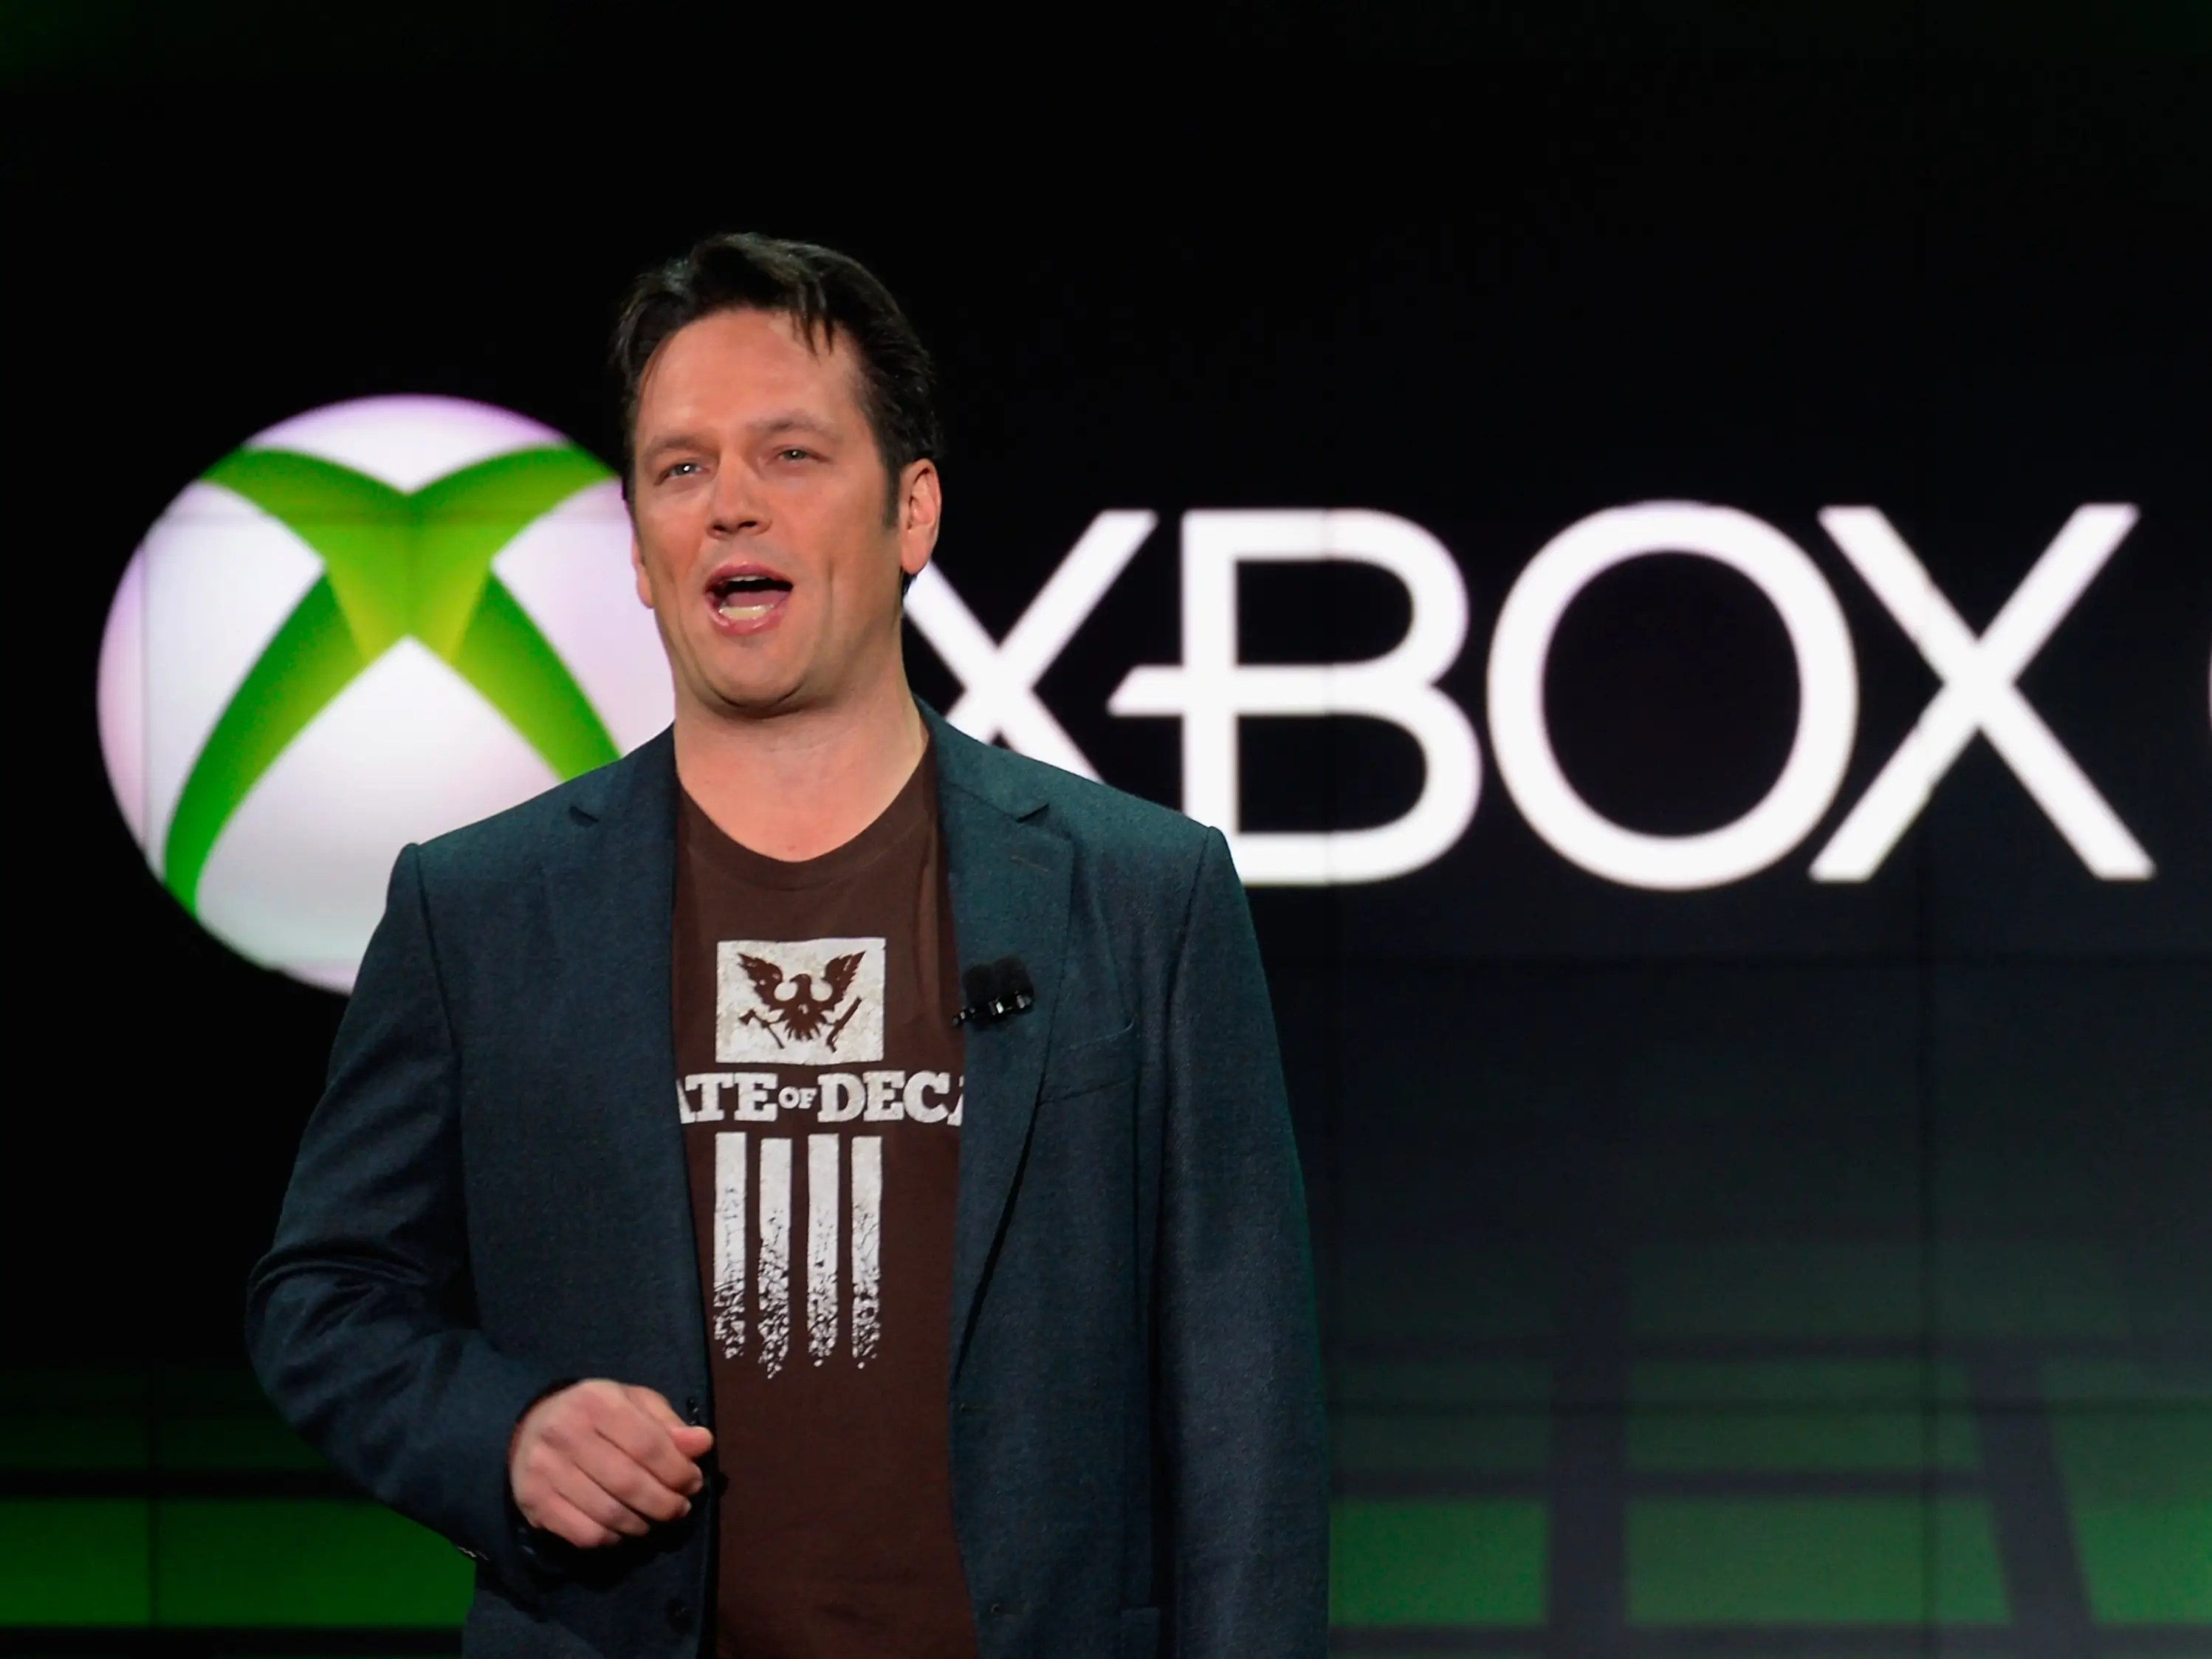 New features for the Xbox One